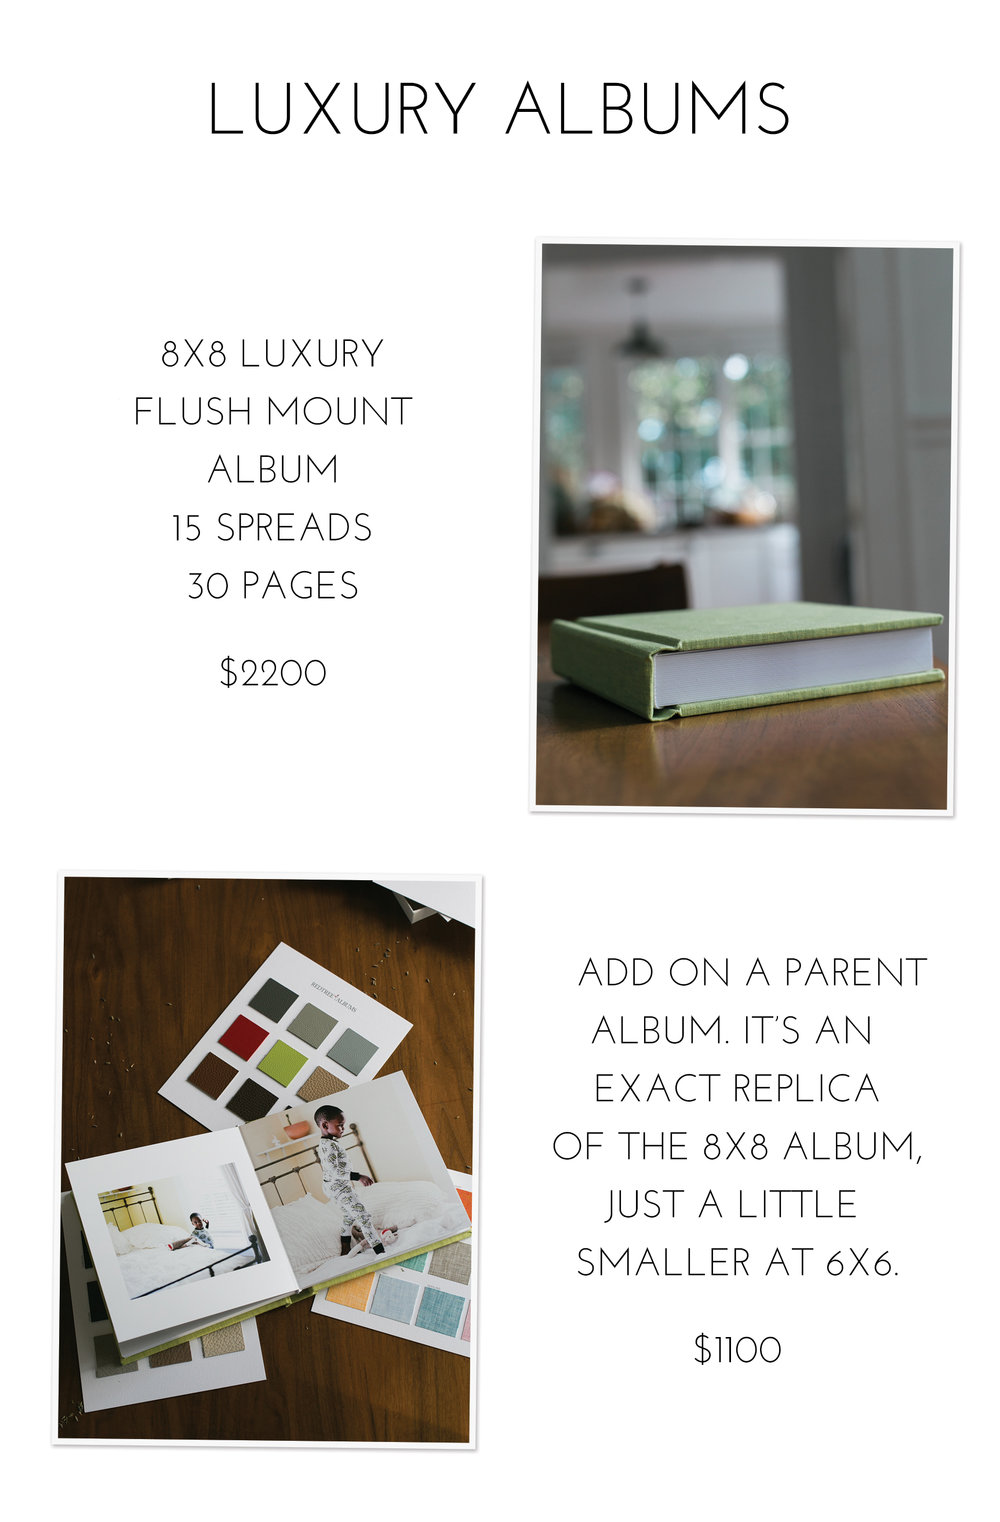 family luxury albums.jpg